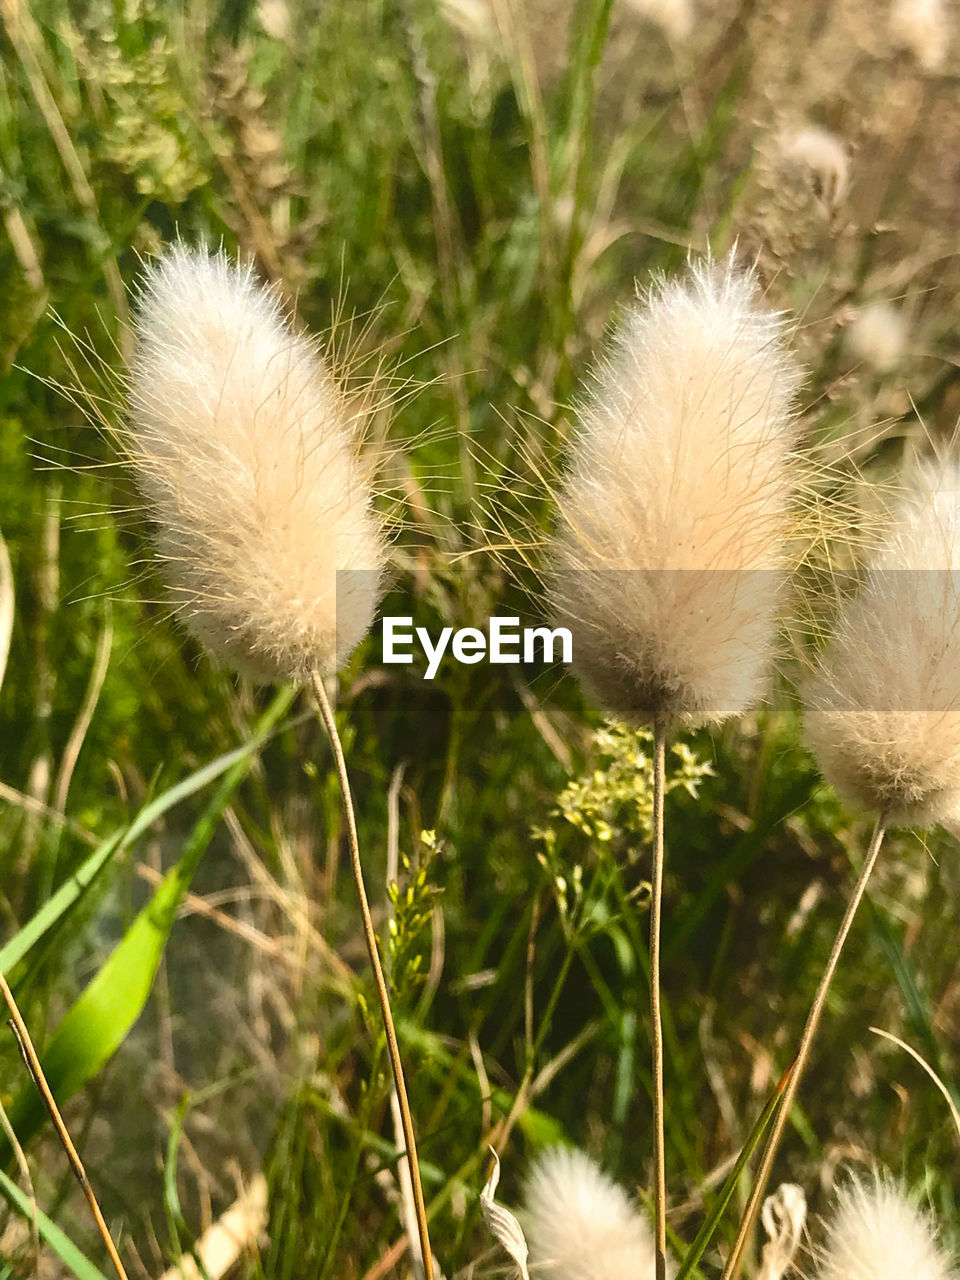 plant, growth, nature, no people, close-up, flower, dandelion, focus on foreground, fragility, beauty in nature, vulnerability, day, freshness, flowering plant, land, field, softness, grass, white color, outdoors, flower head, dandelion seed